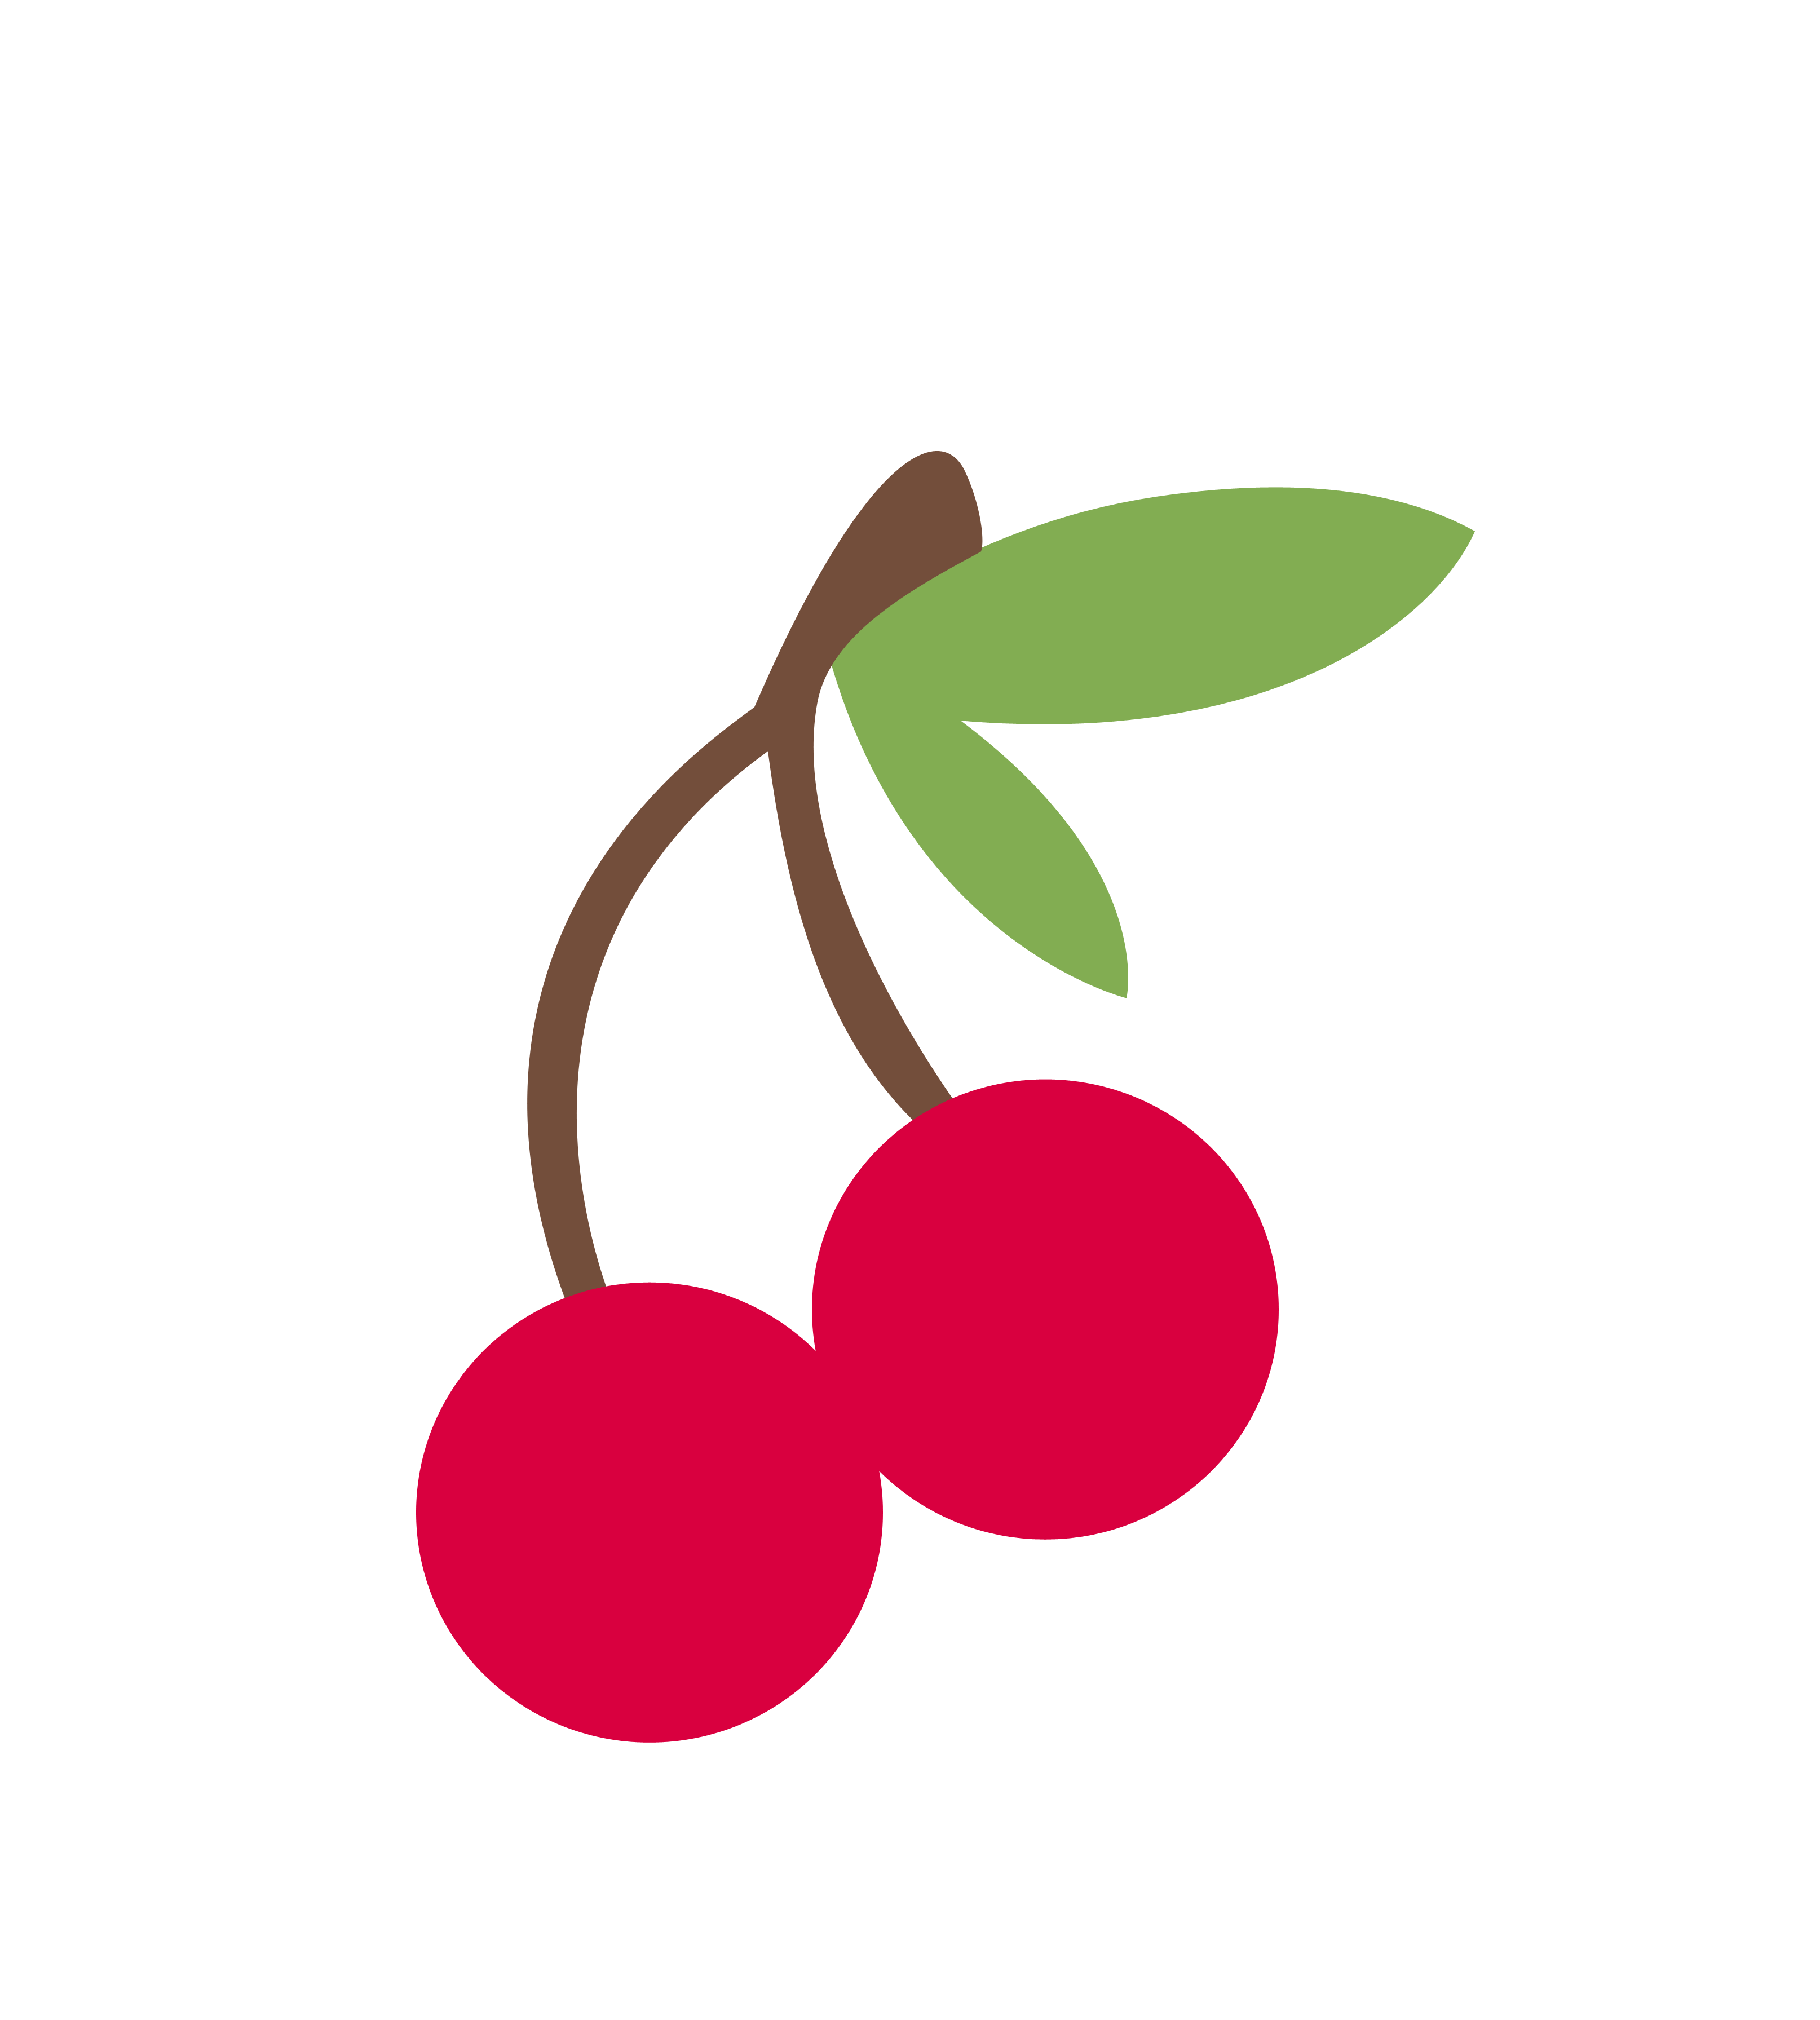 Transparent clipart cherry picture library download Cherry Clip art - Cherry Vector Transparent Background png ... picture library download